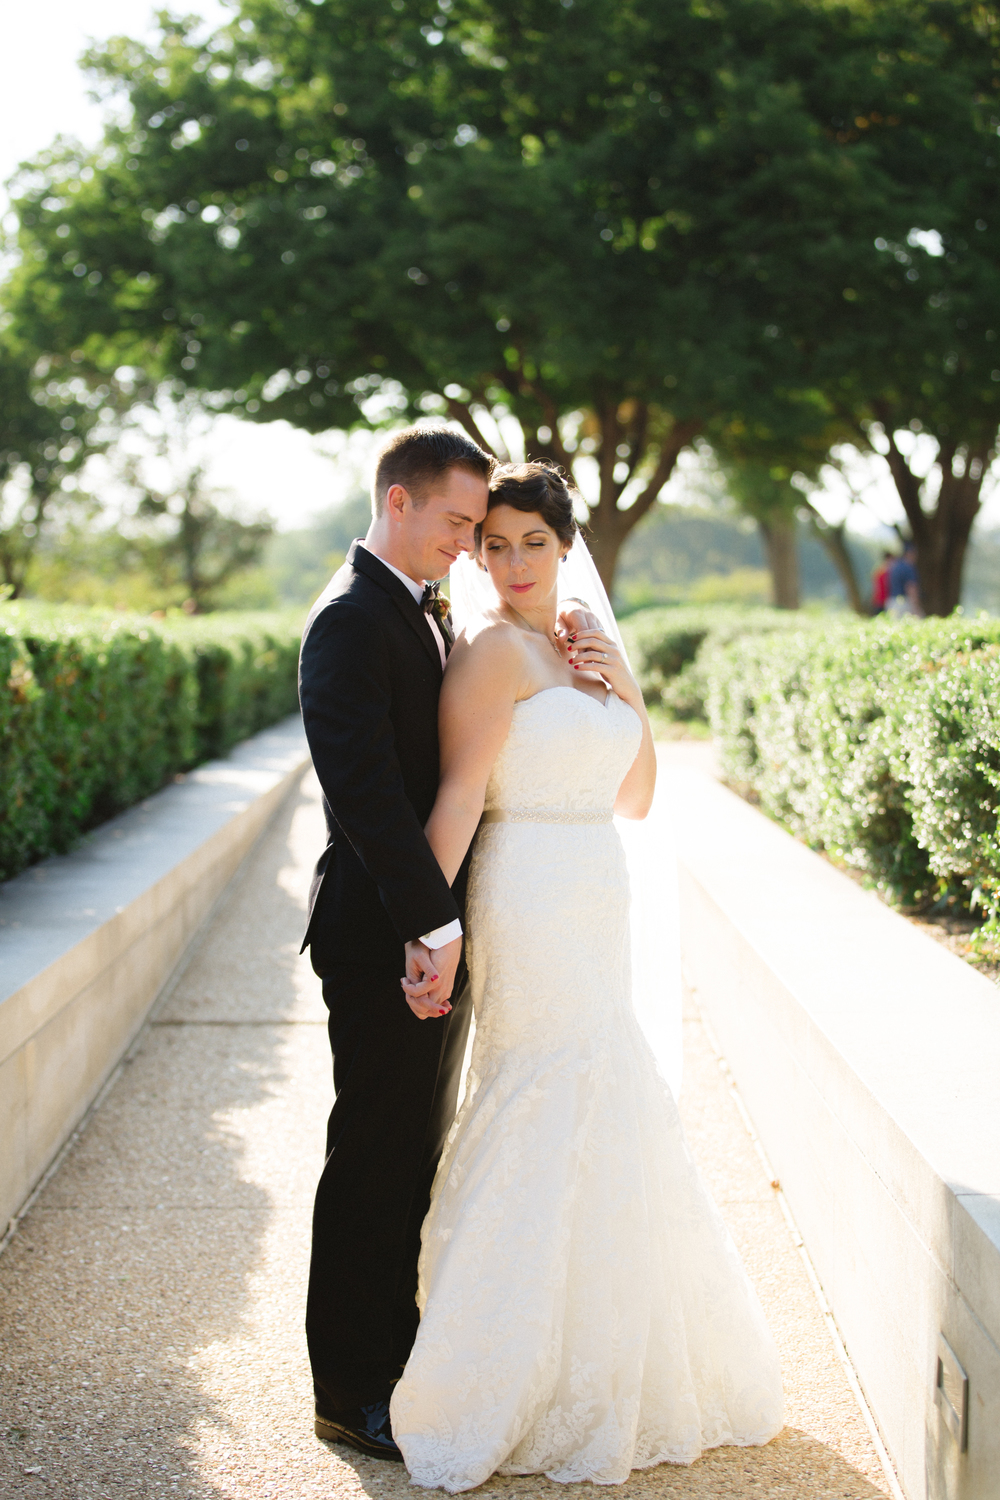 Vness_Photography_Wedding_Photographer_Washington-DC_Fish_Wedding-622.JPG